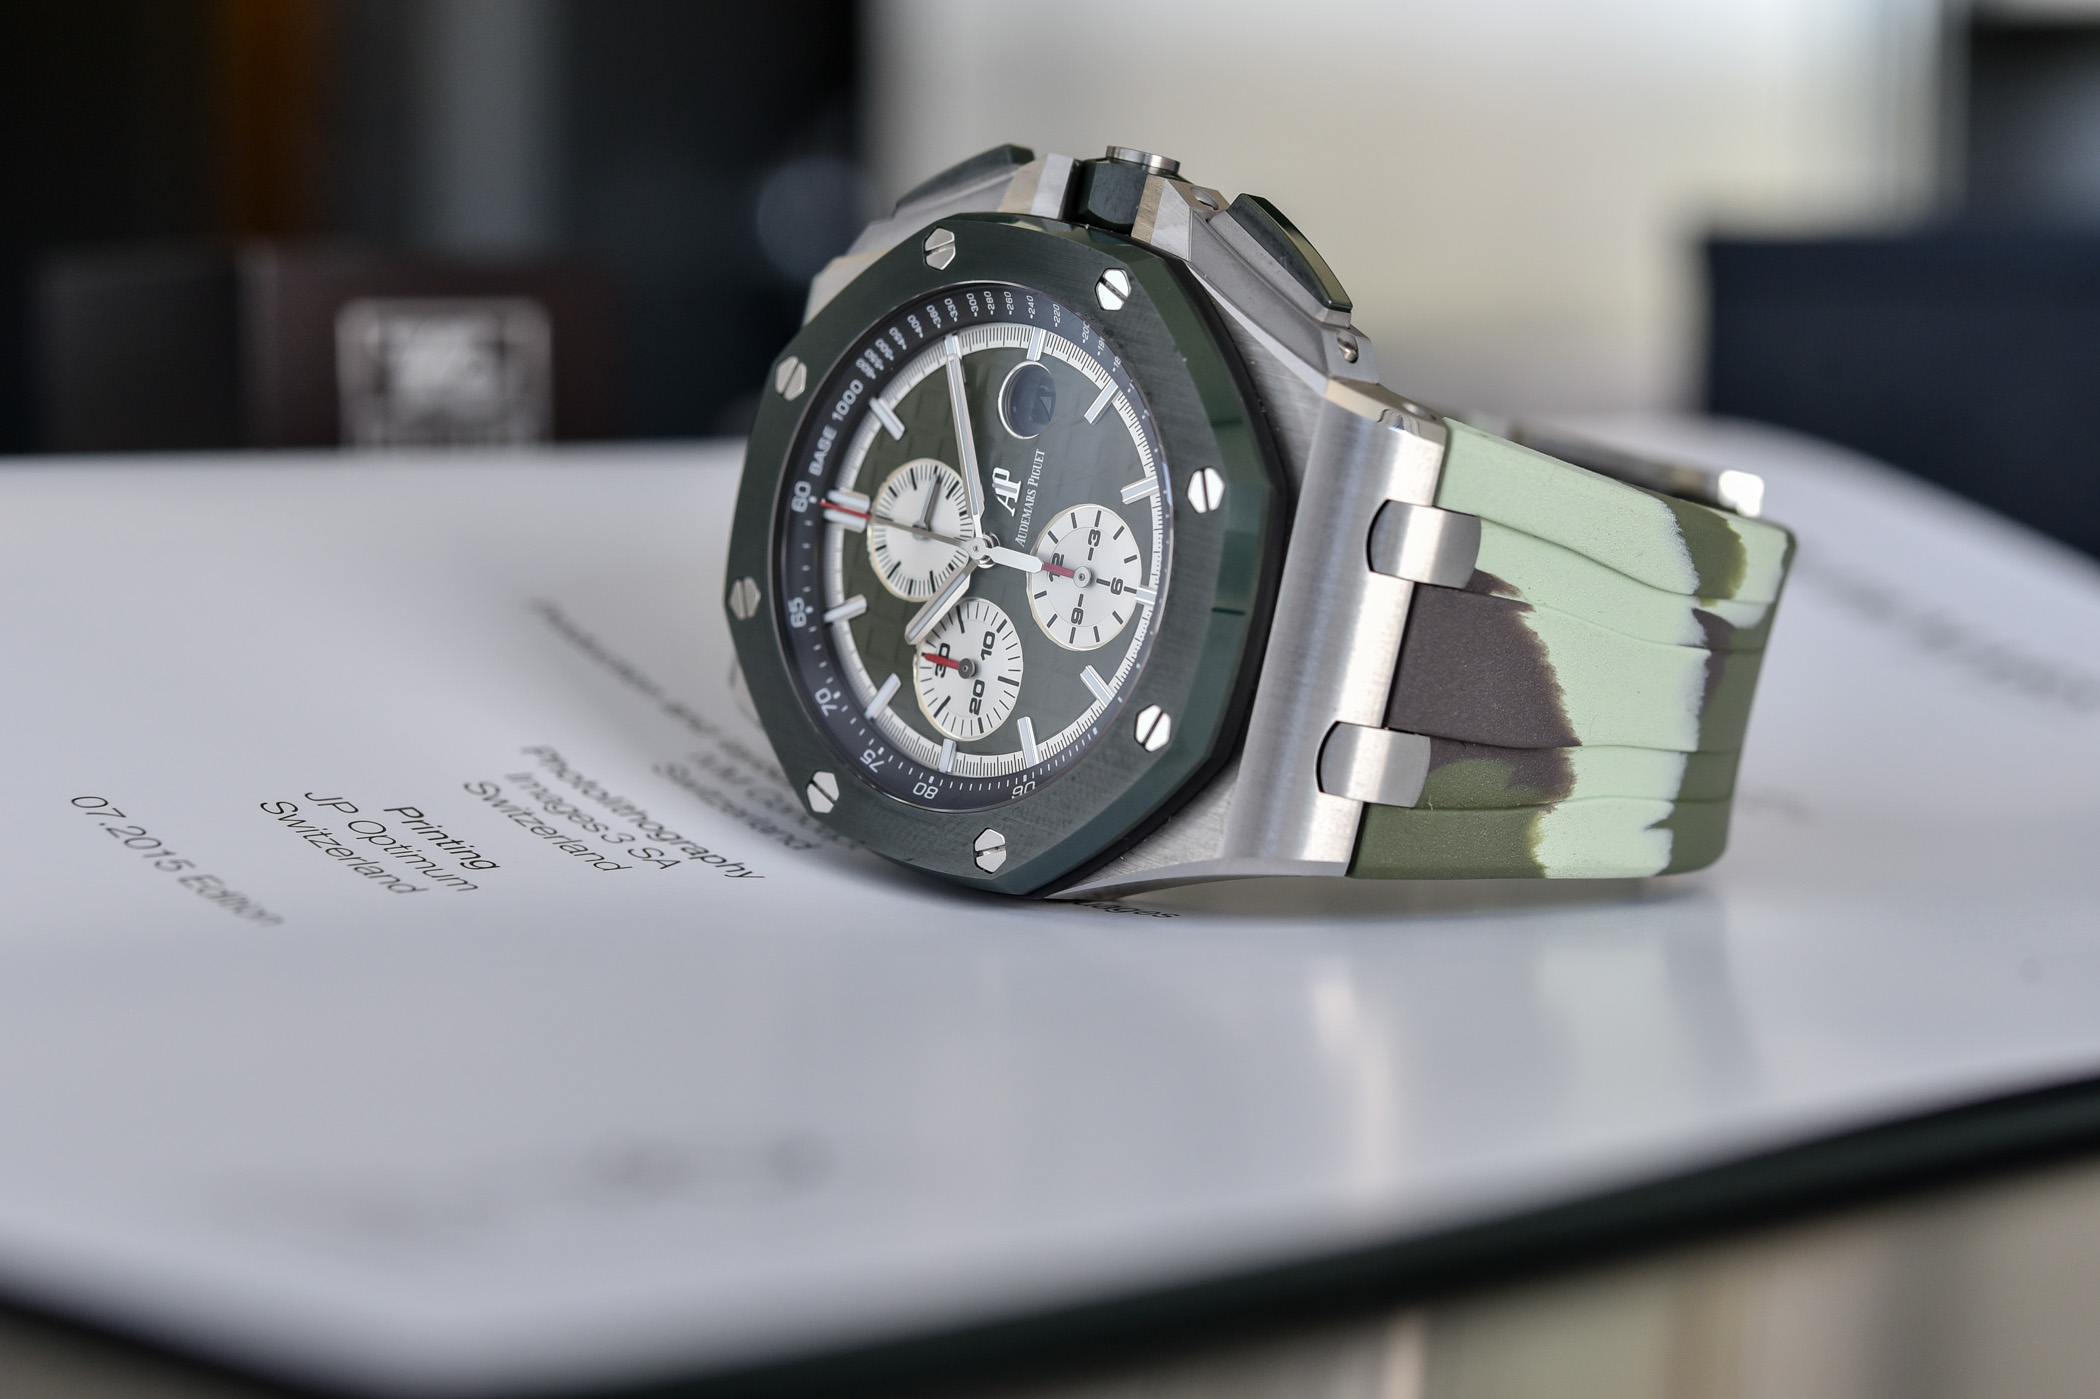 Audemars Piguet Royal Oak Offshore Selfwinding Chronograph 44mm Camo 26400SO - 8